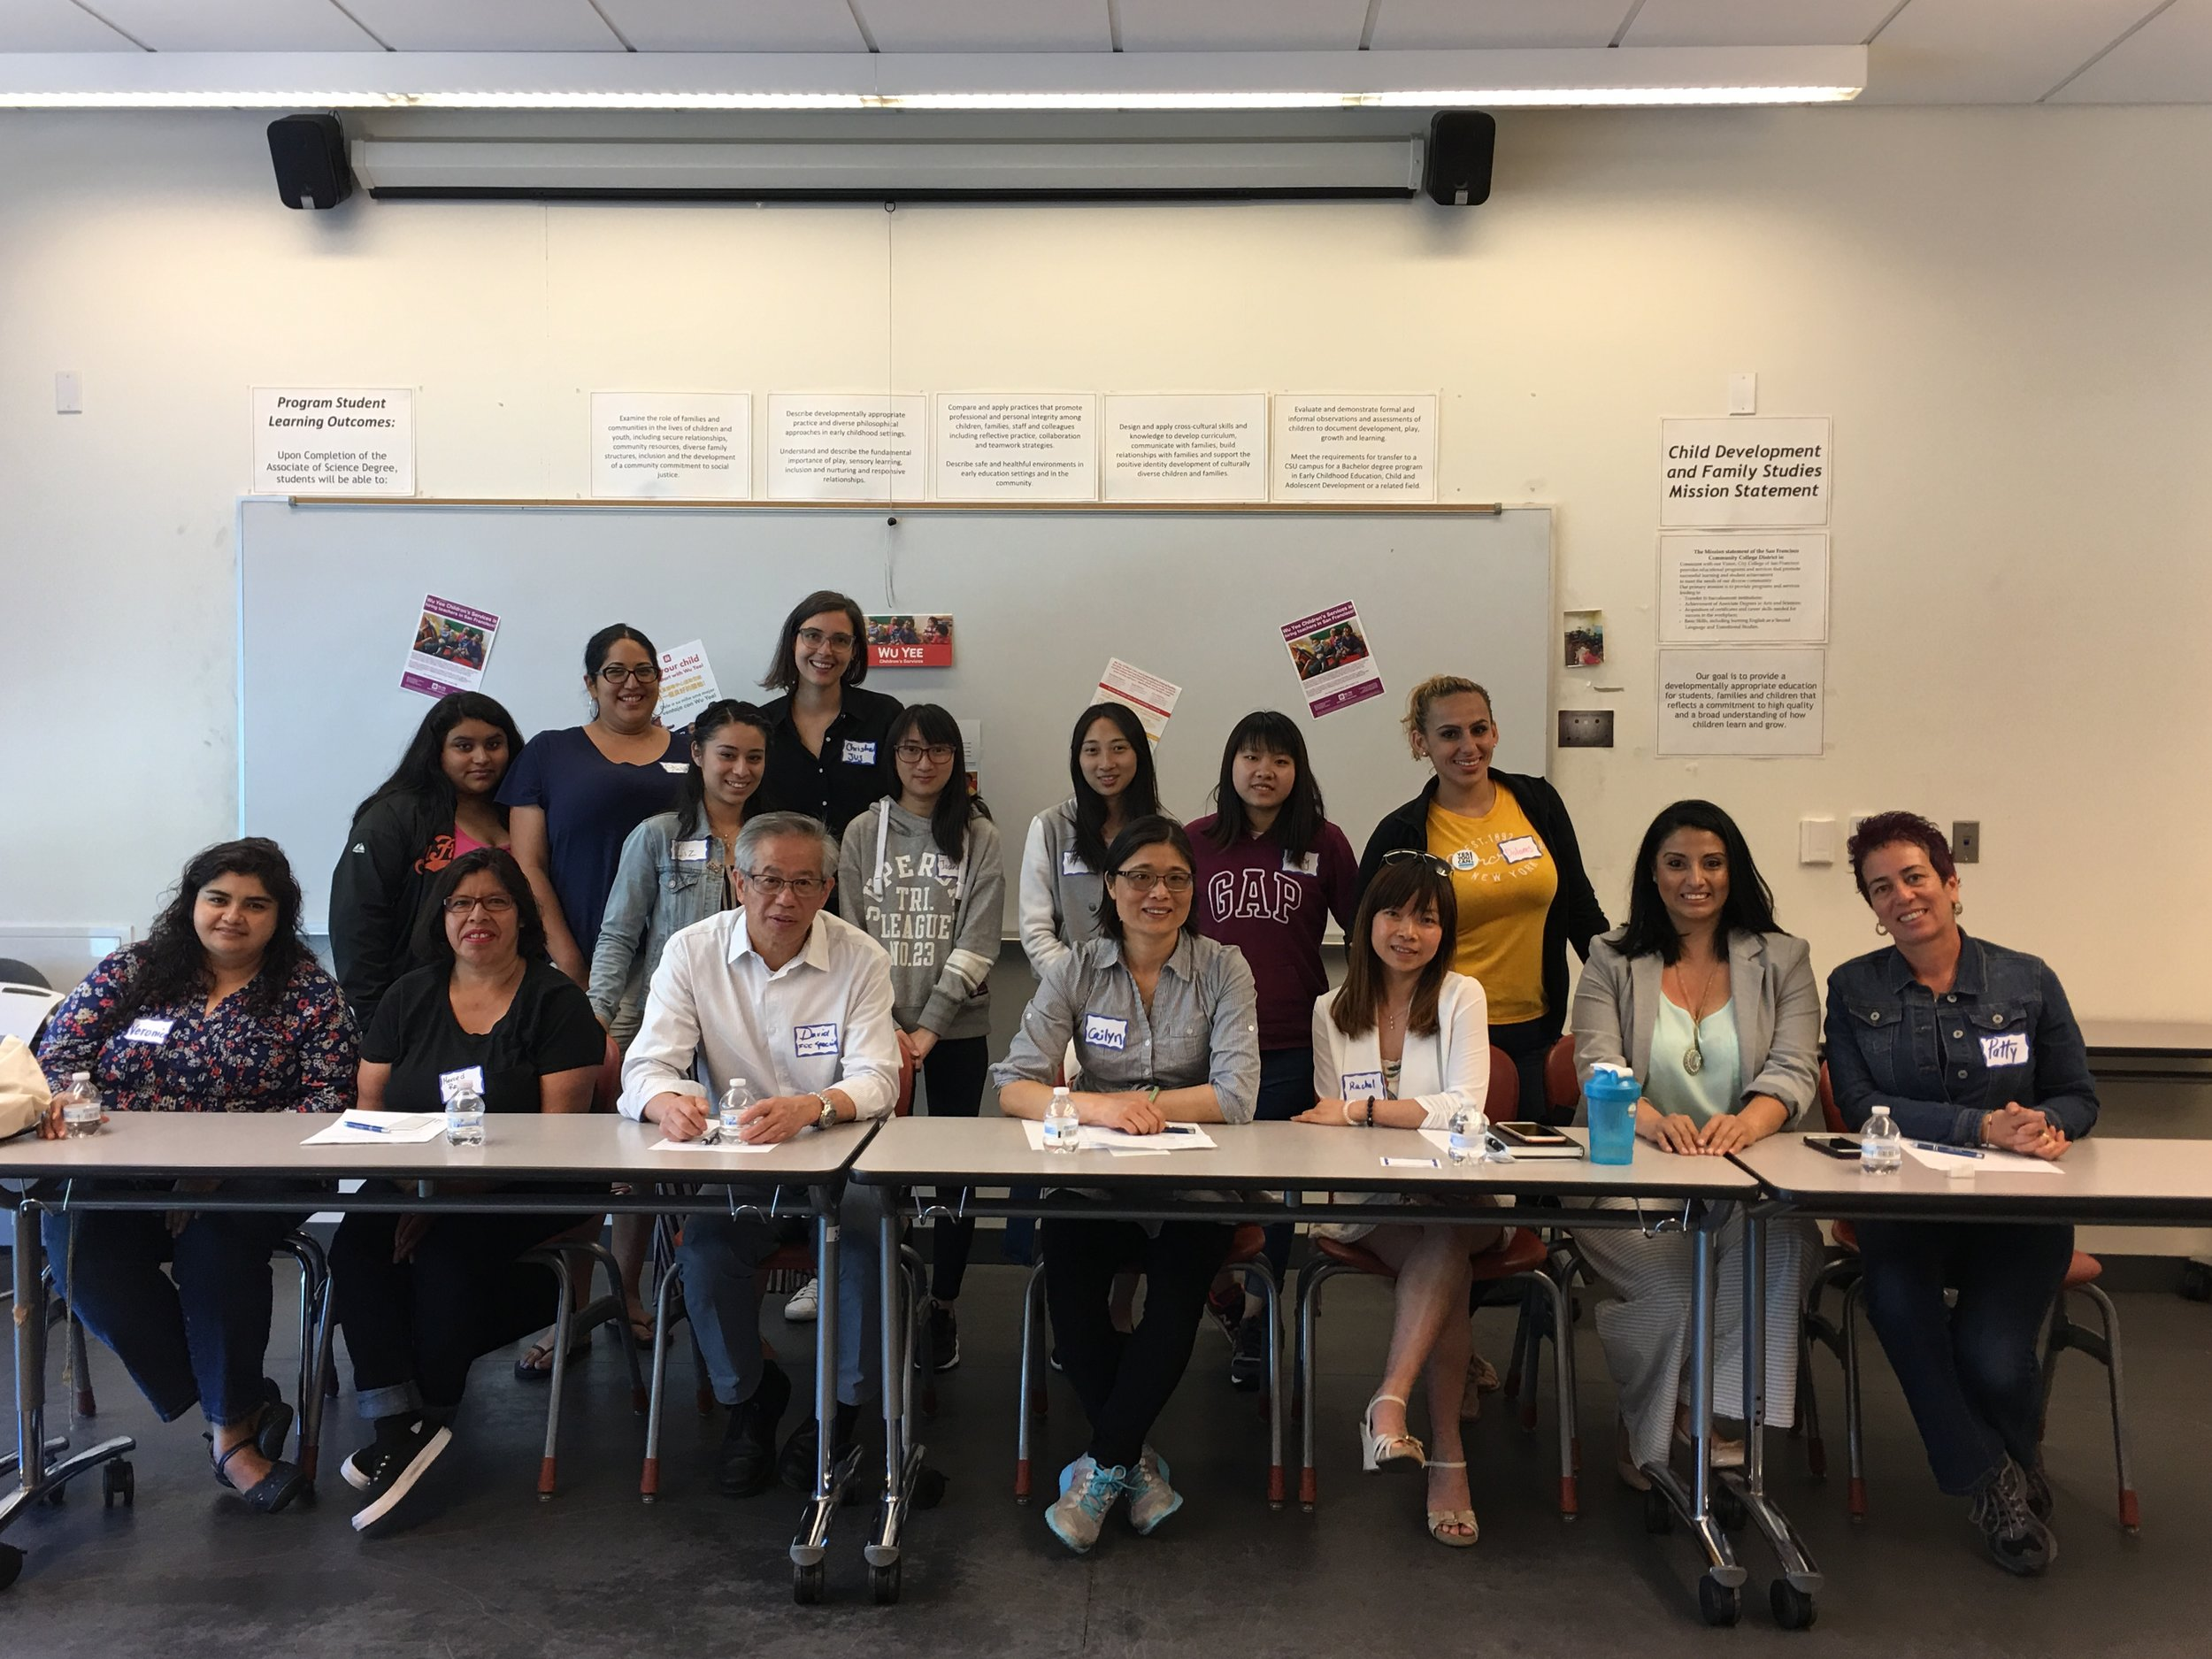 Reflective Supervision Practices at City College of San Francisco